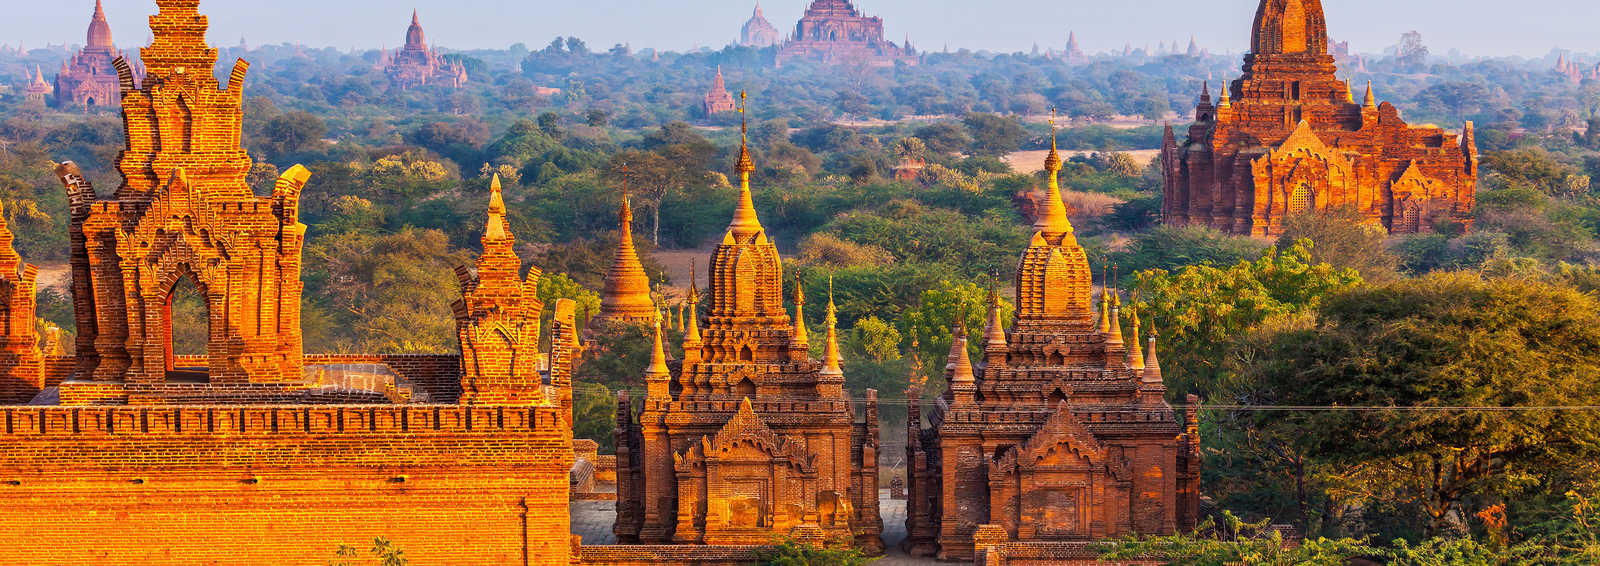 Temples in Bagan, Myanmar